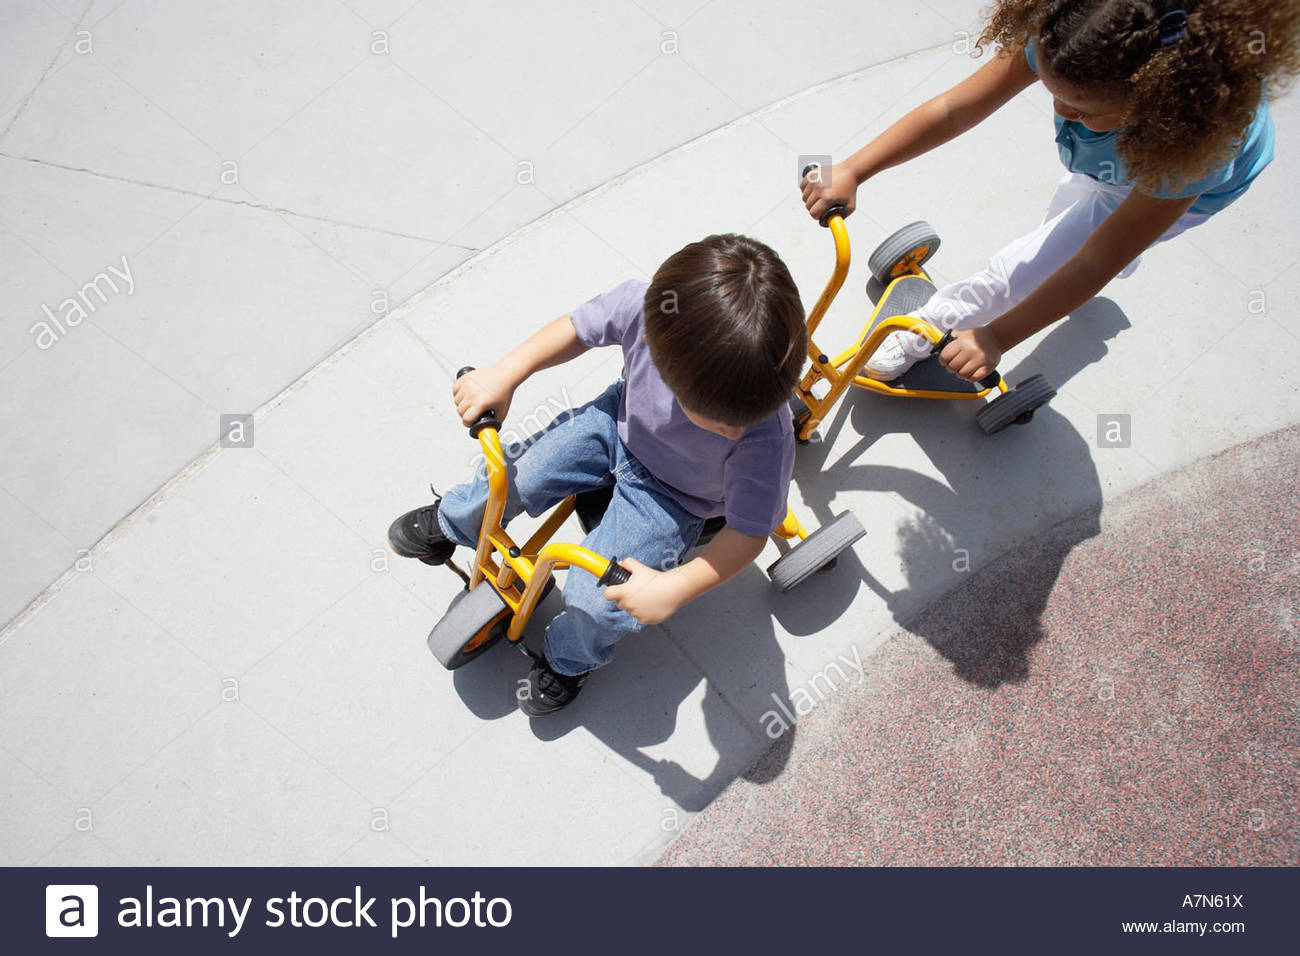 Boy and girl 4 6 riding toy tricycle and push scooter in playground overhead view - Stock Image